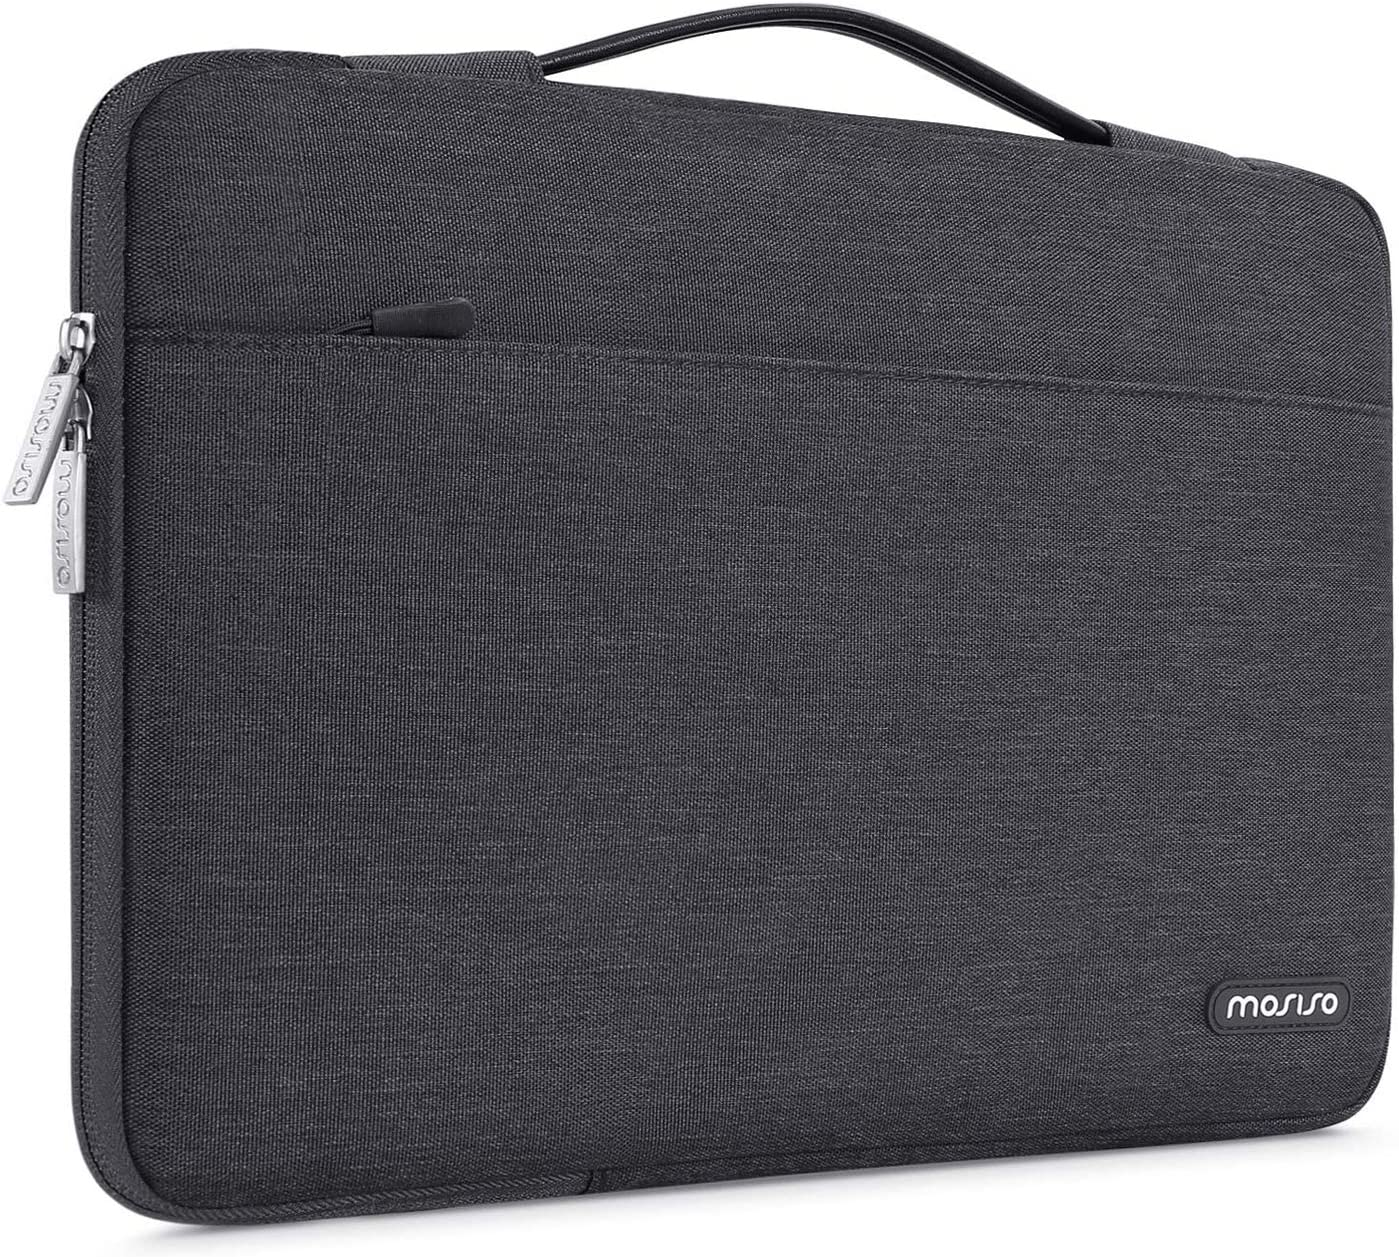 MOSISO Laptop Sleeve 360 Protective Case Bag Compatible with 13-13.3 inch MacBook Pro, MacBook Air, Notebook Computer, Polyester Briefcase with Trolley Belt, Space Gray